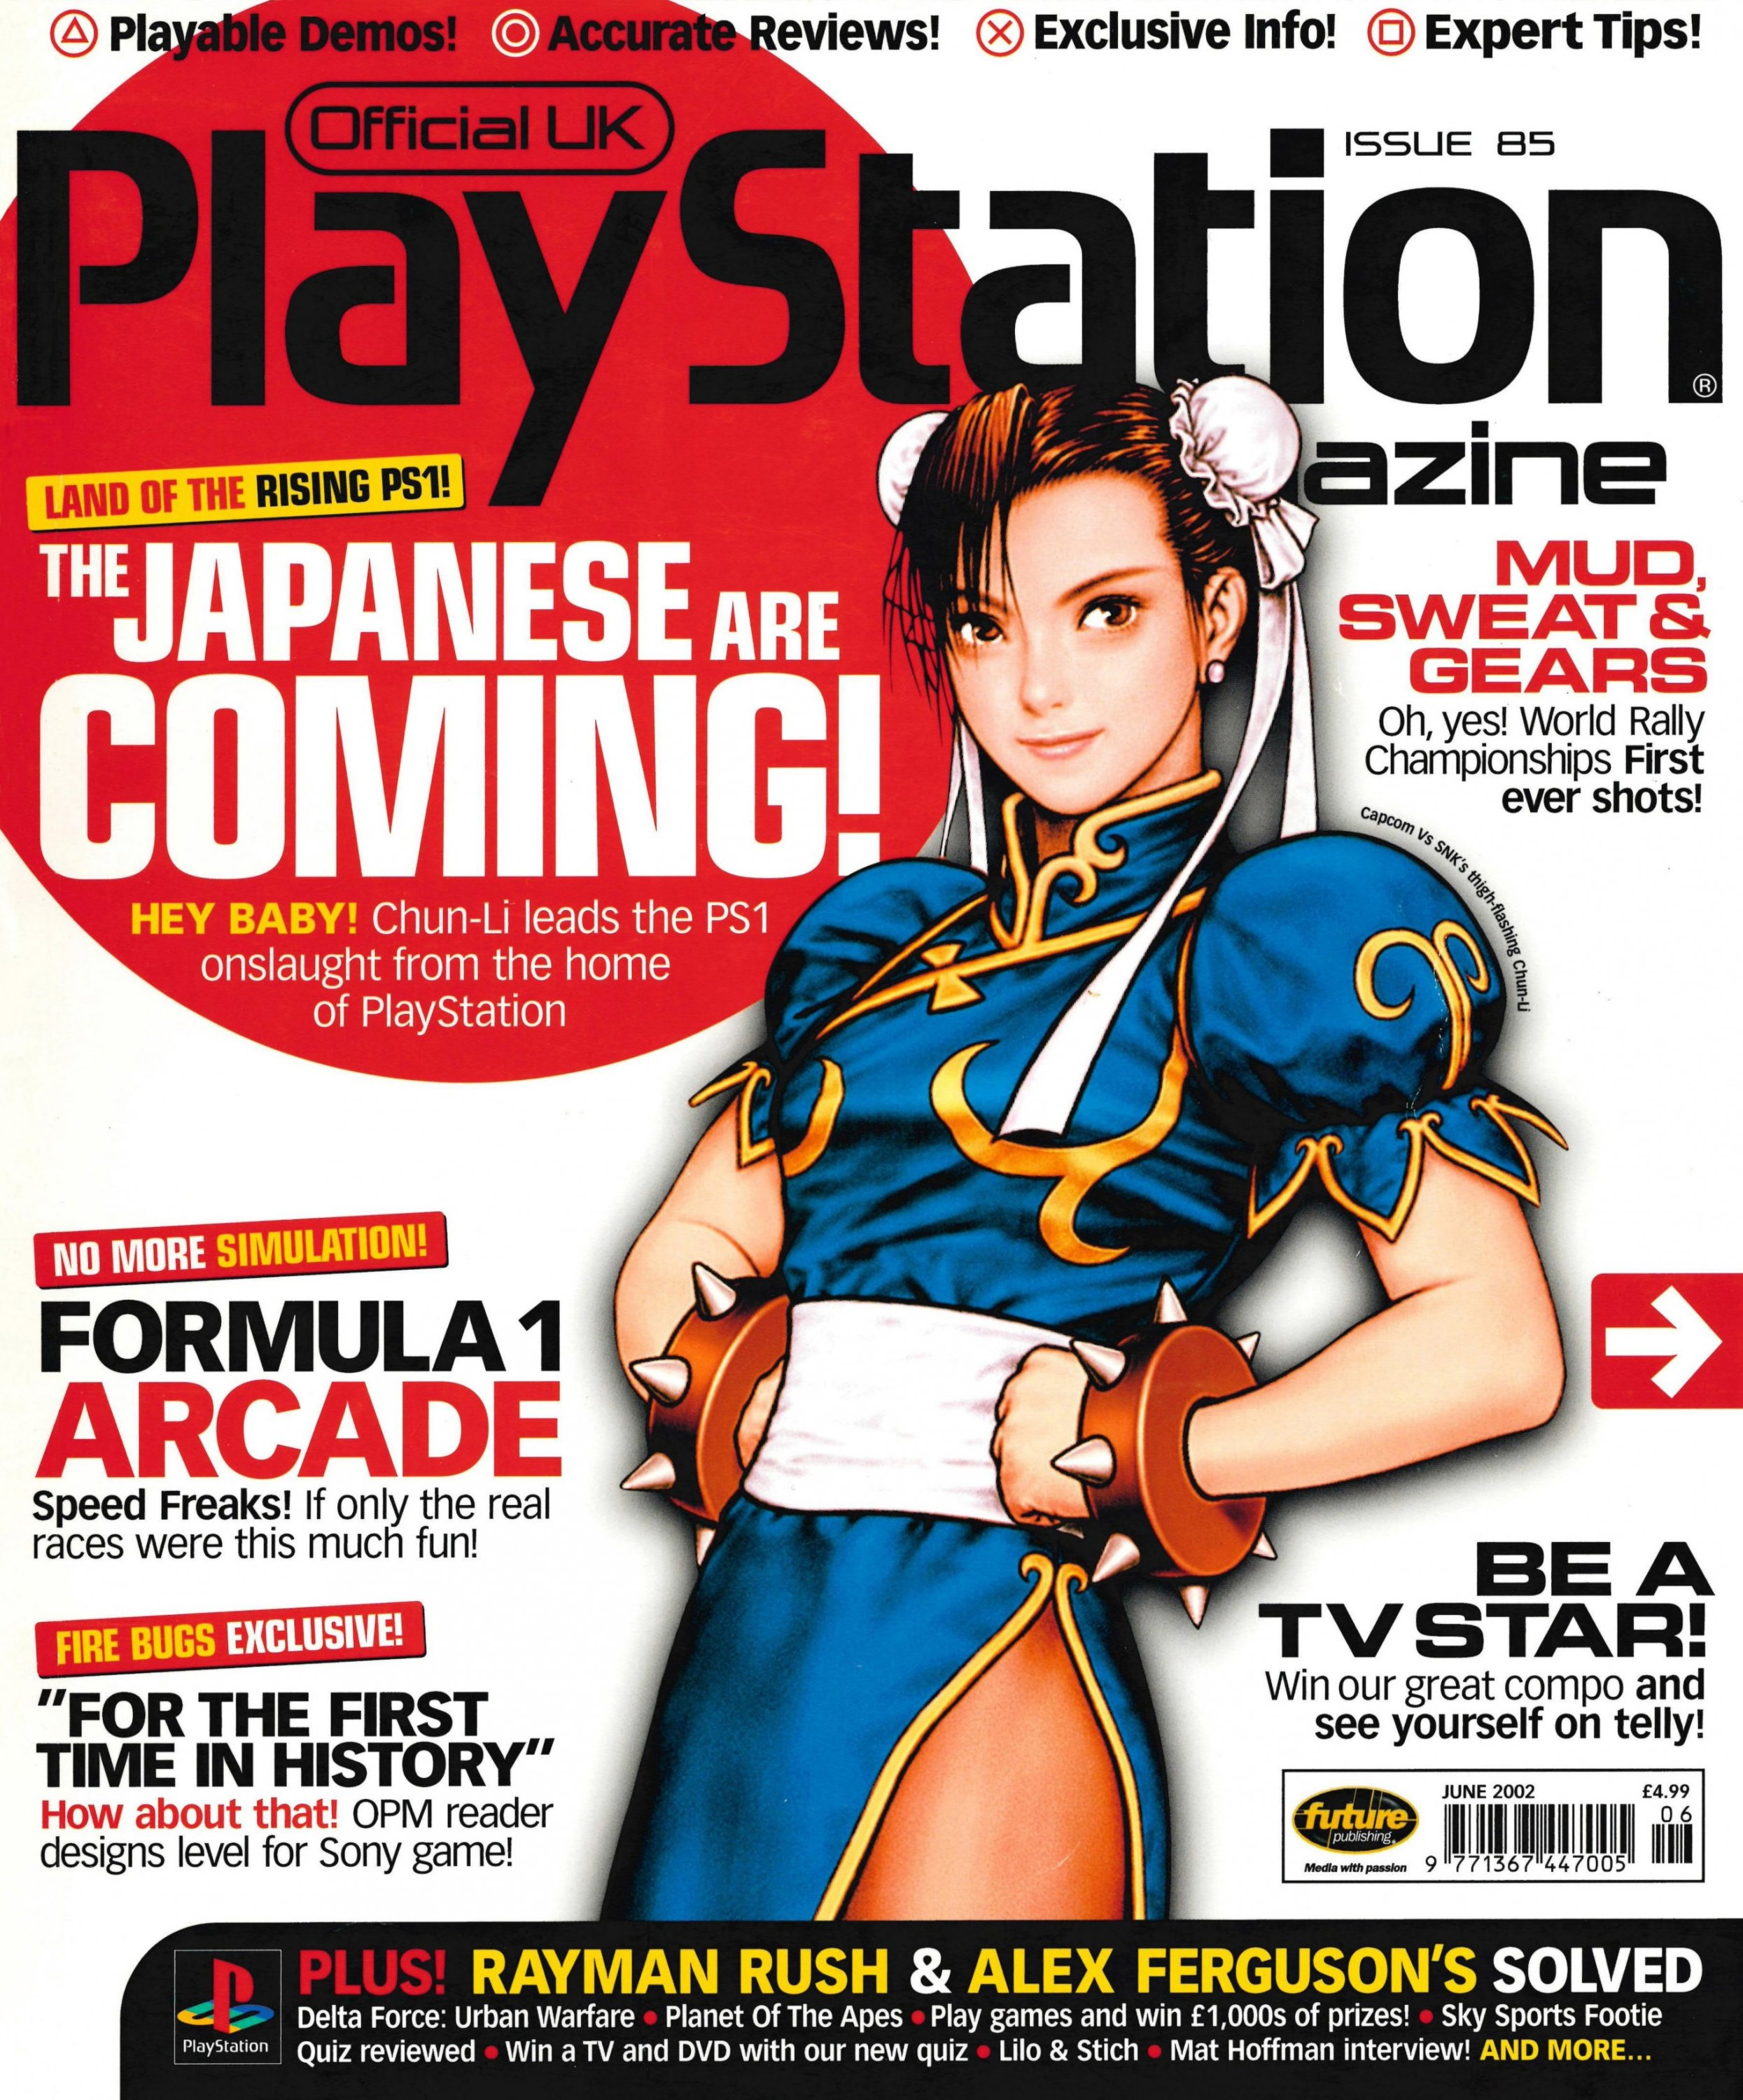 Official UK PlayStation Magazine Issue 085 (June 2002)